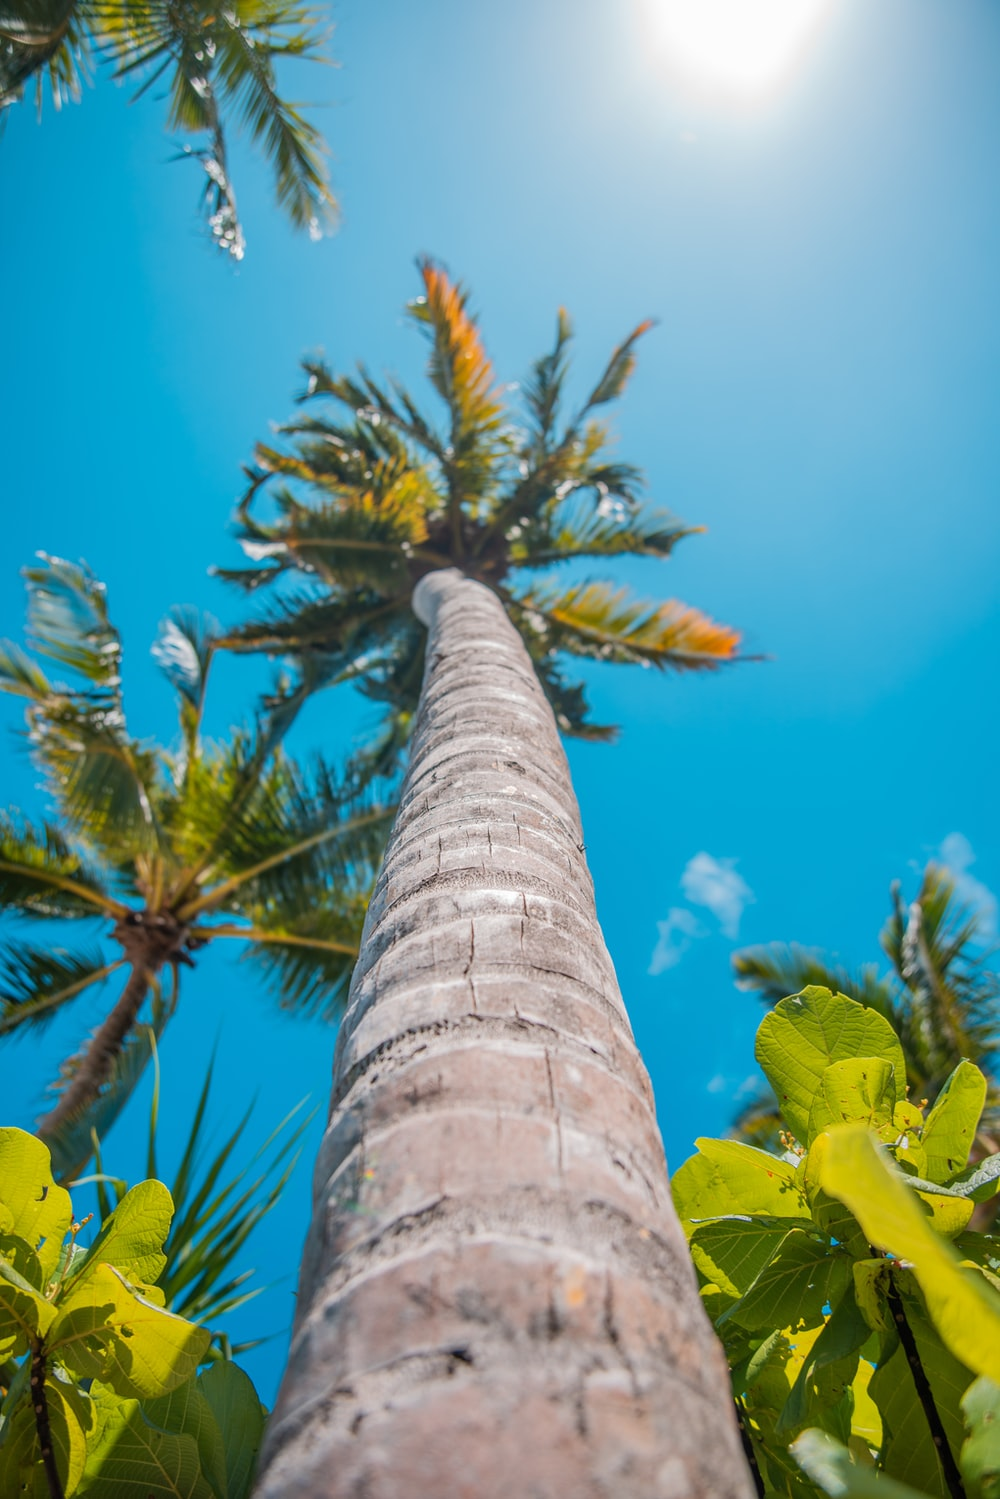 coconut trees under blue sky